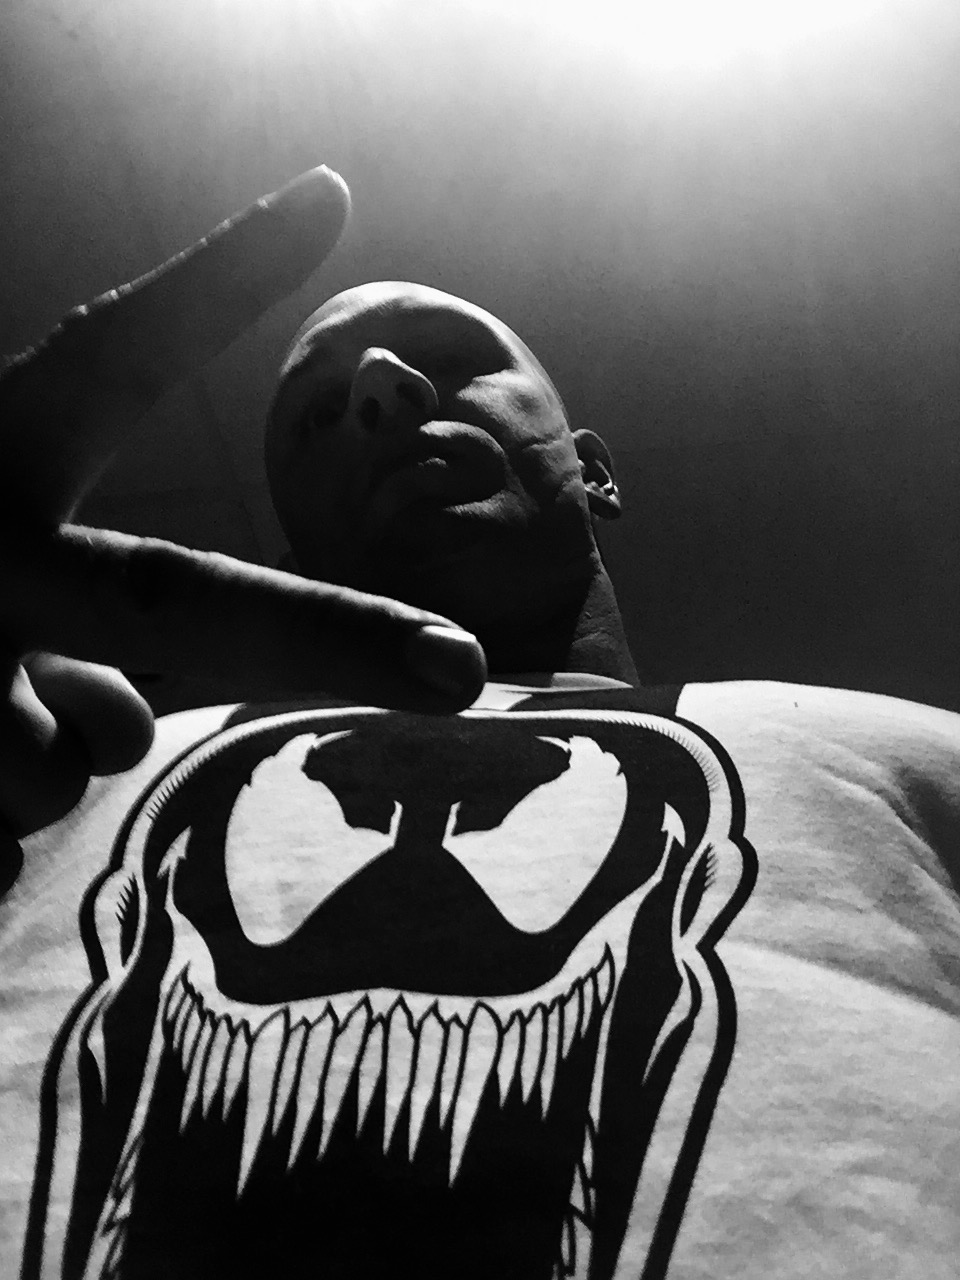 sonys-venom-film-will-star-tom-hardy-and-be-directed-by-ruben-fleischer